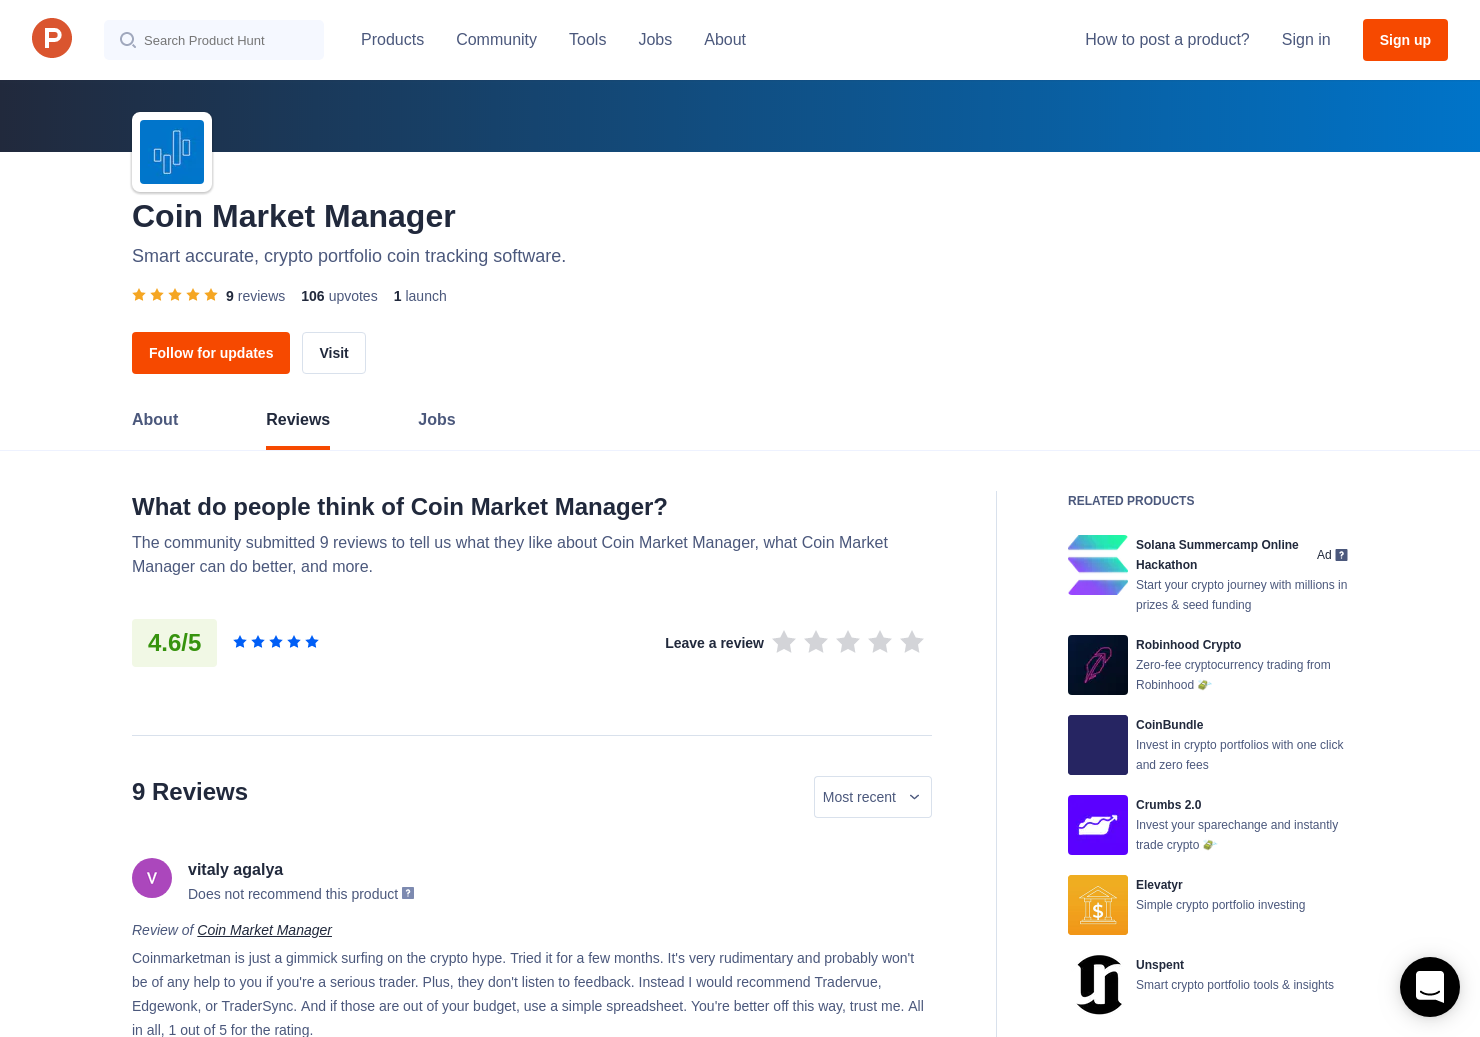 8 Coin Market Manager Reviews - Pros, Cons and Rating | Product Hunt